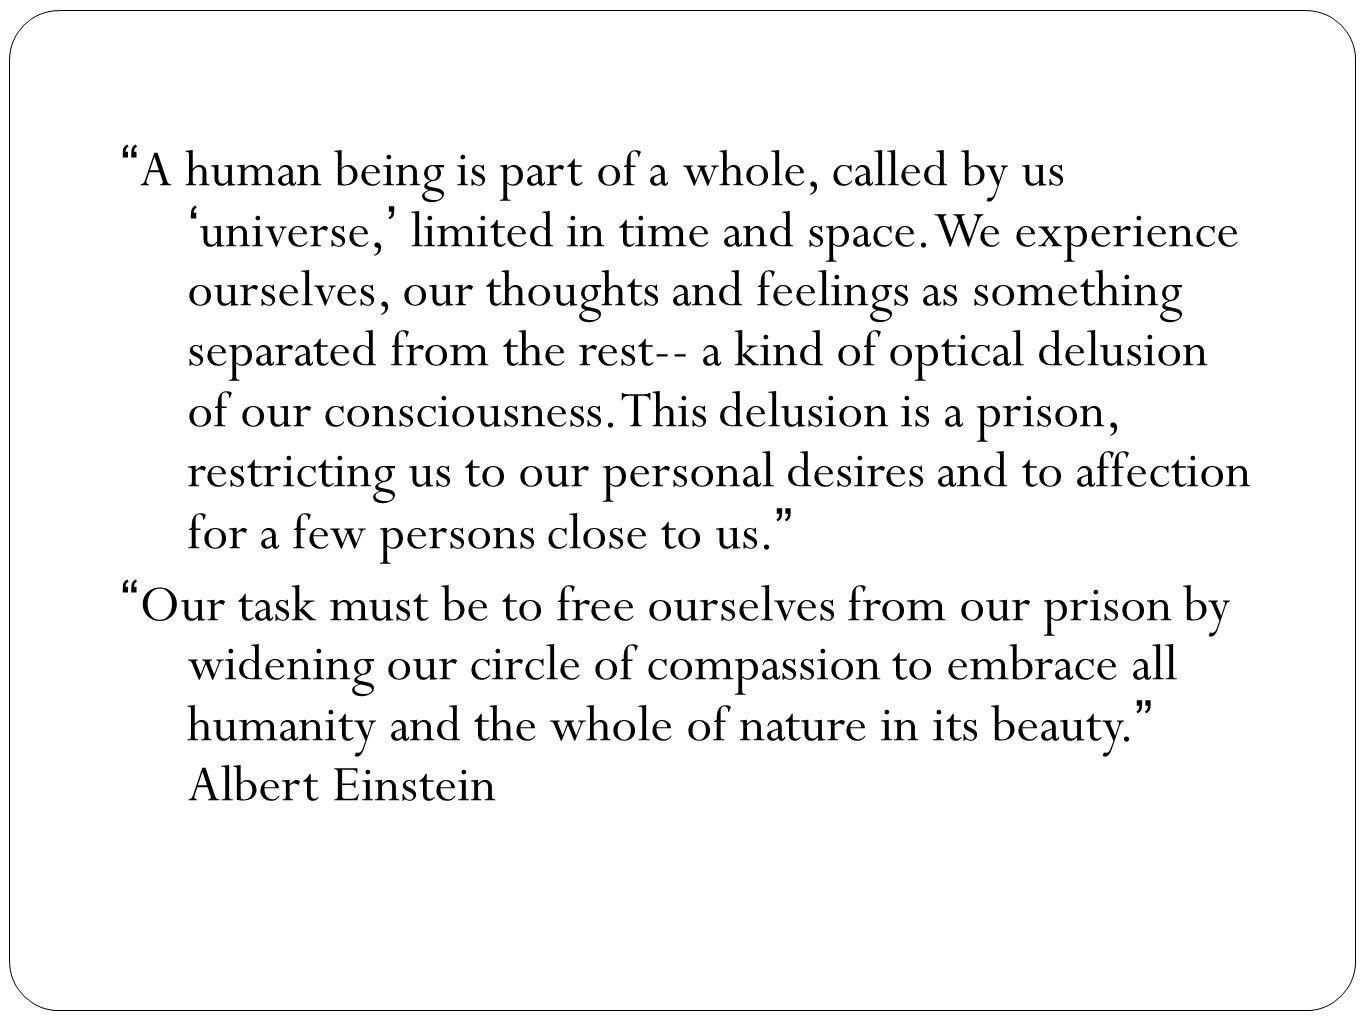 A human being is part of a whole, called by us 'universe,' limited in time and space.